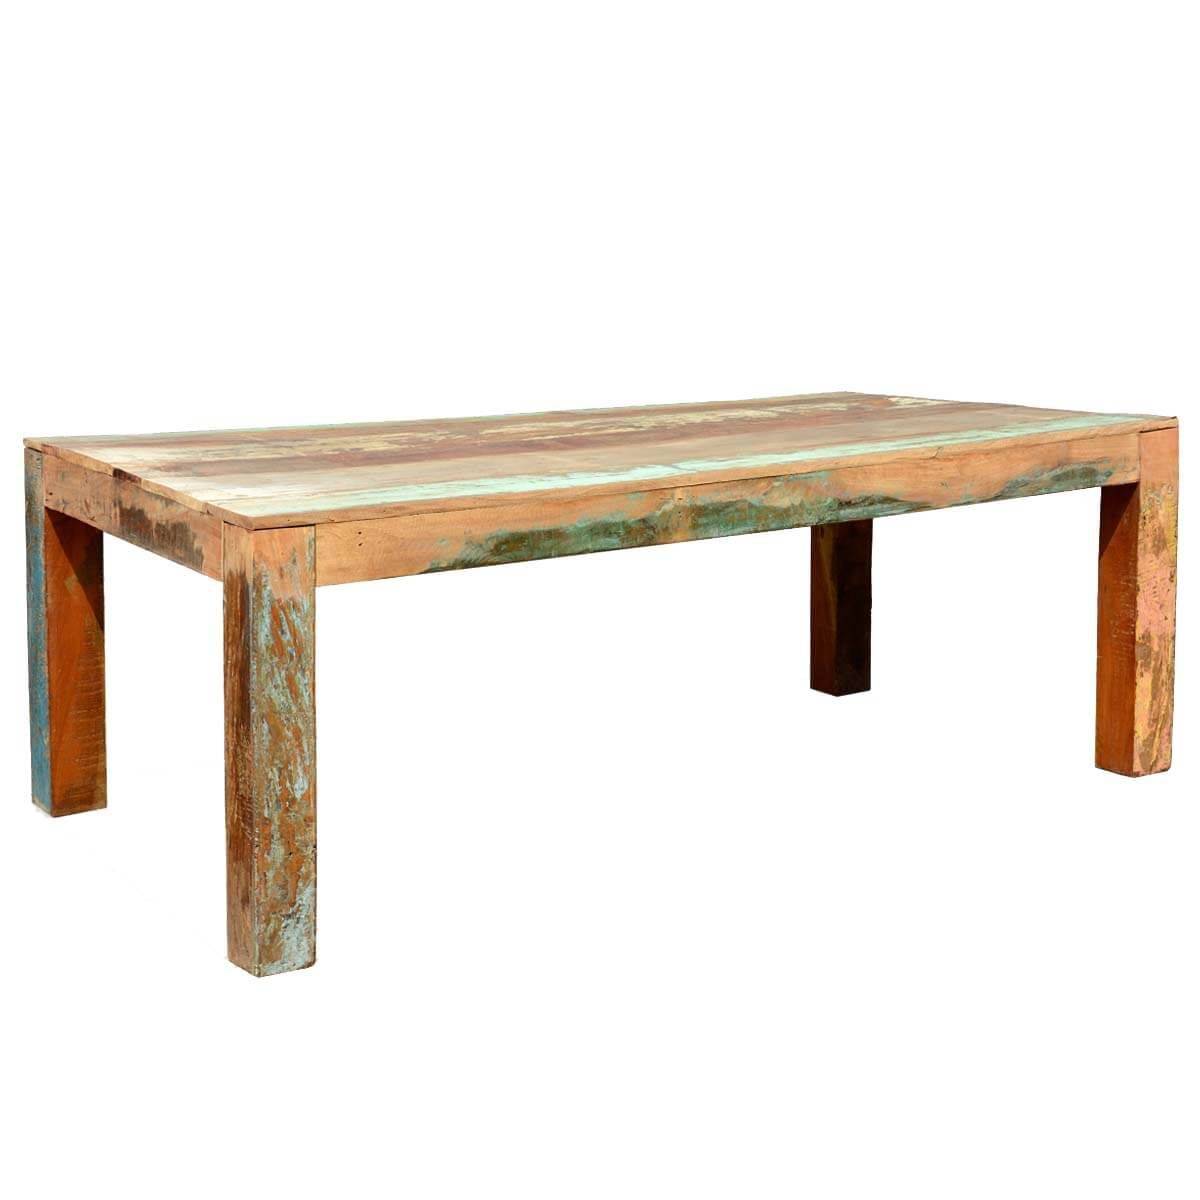 Appalachian Rustic Large Reclaimed Wood Dining Table